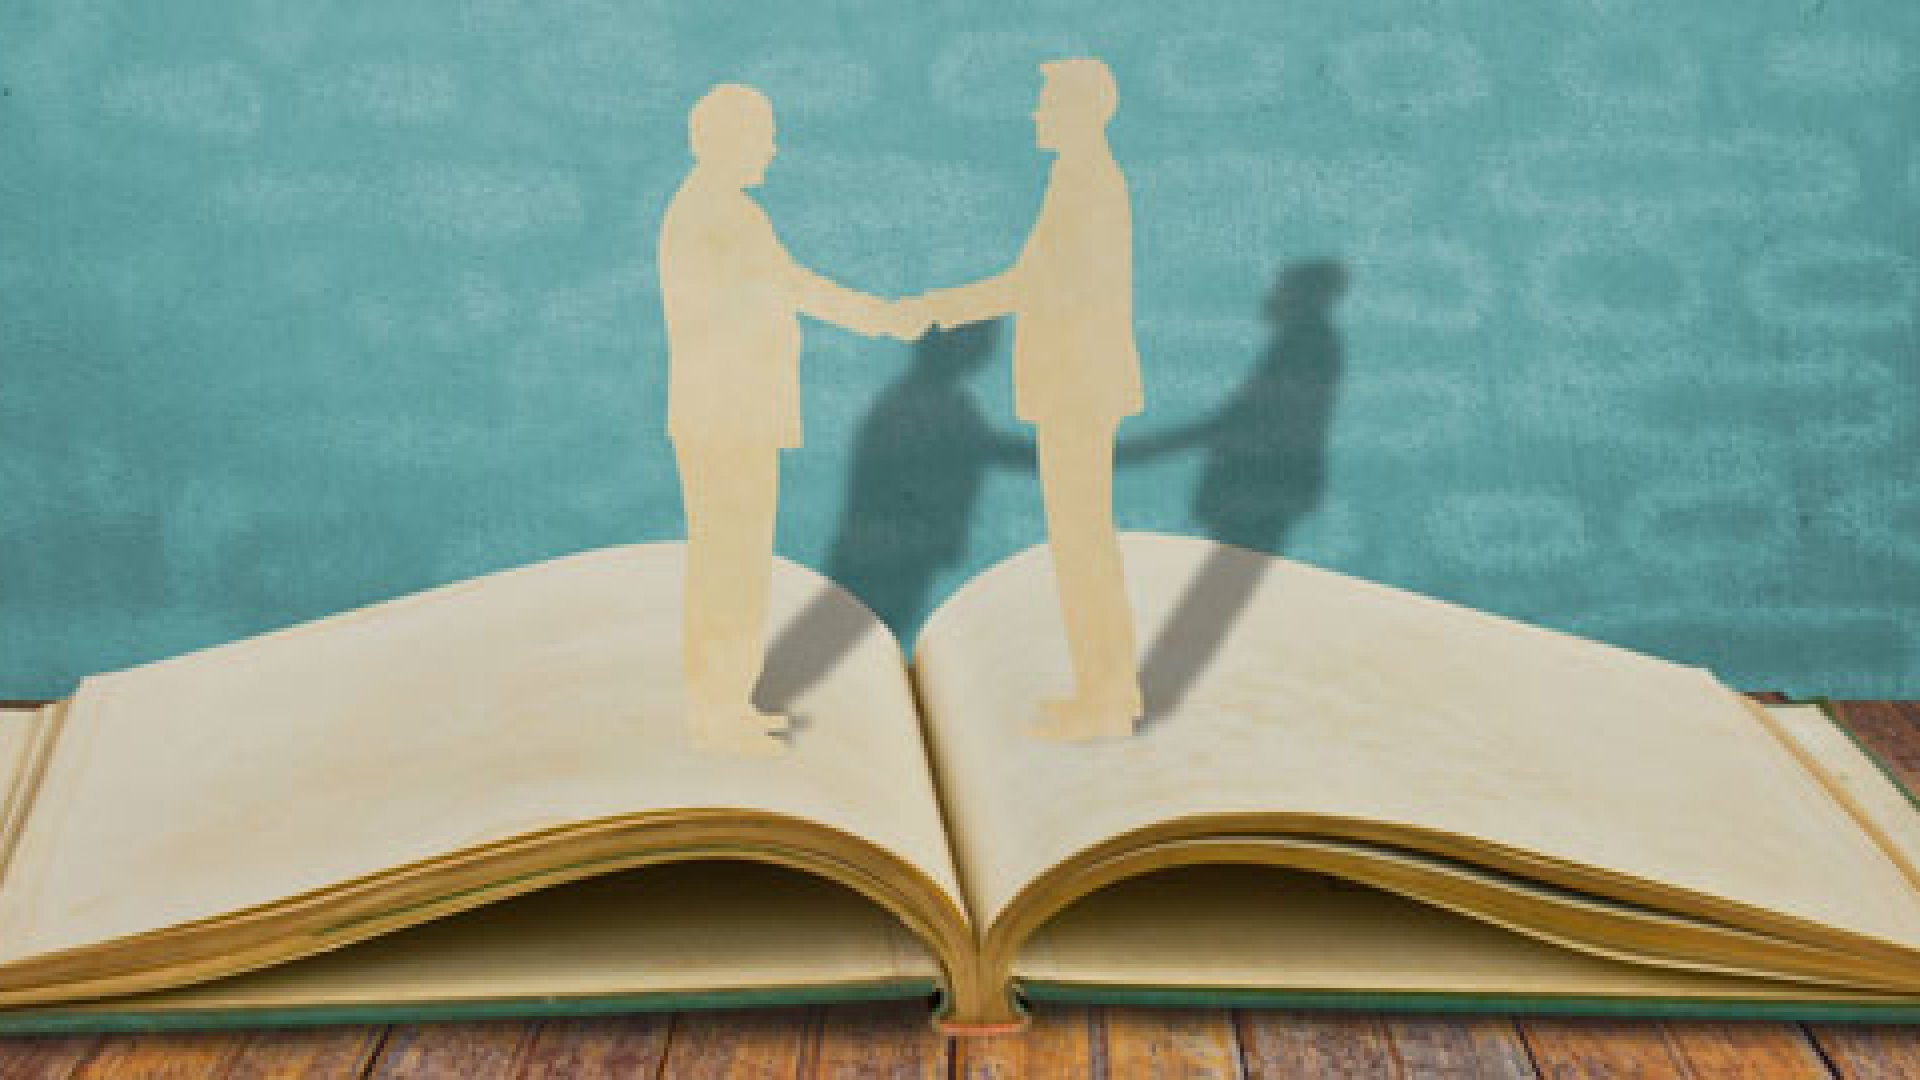 Why Introverts Should Partner With Extroverts